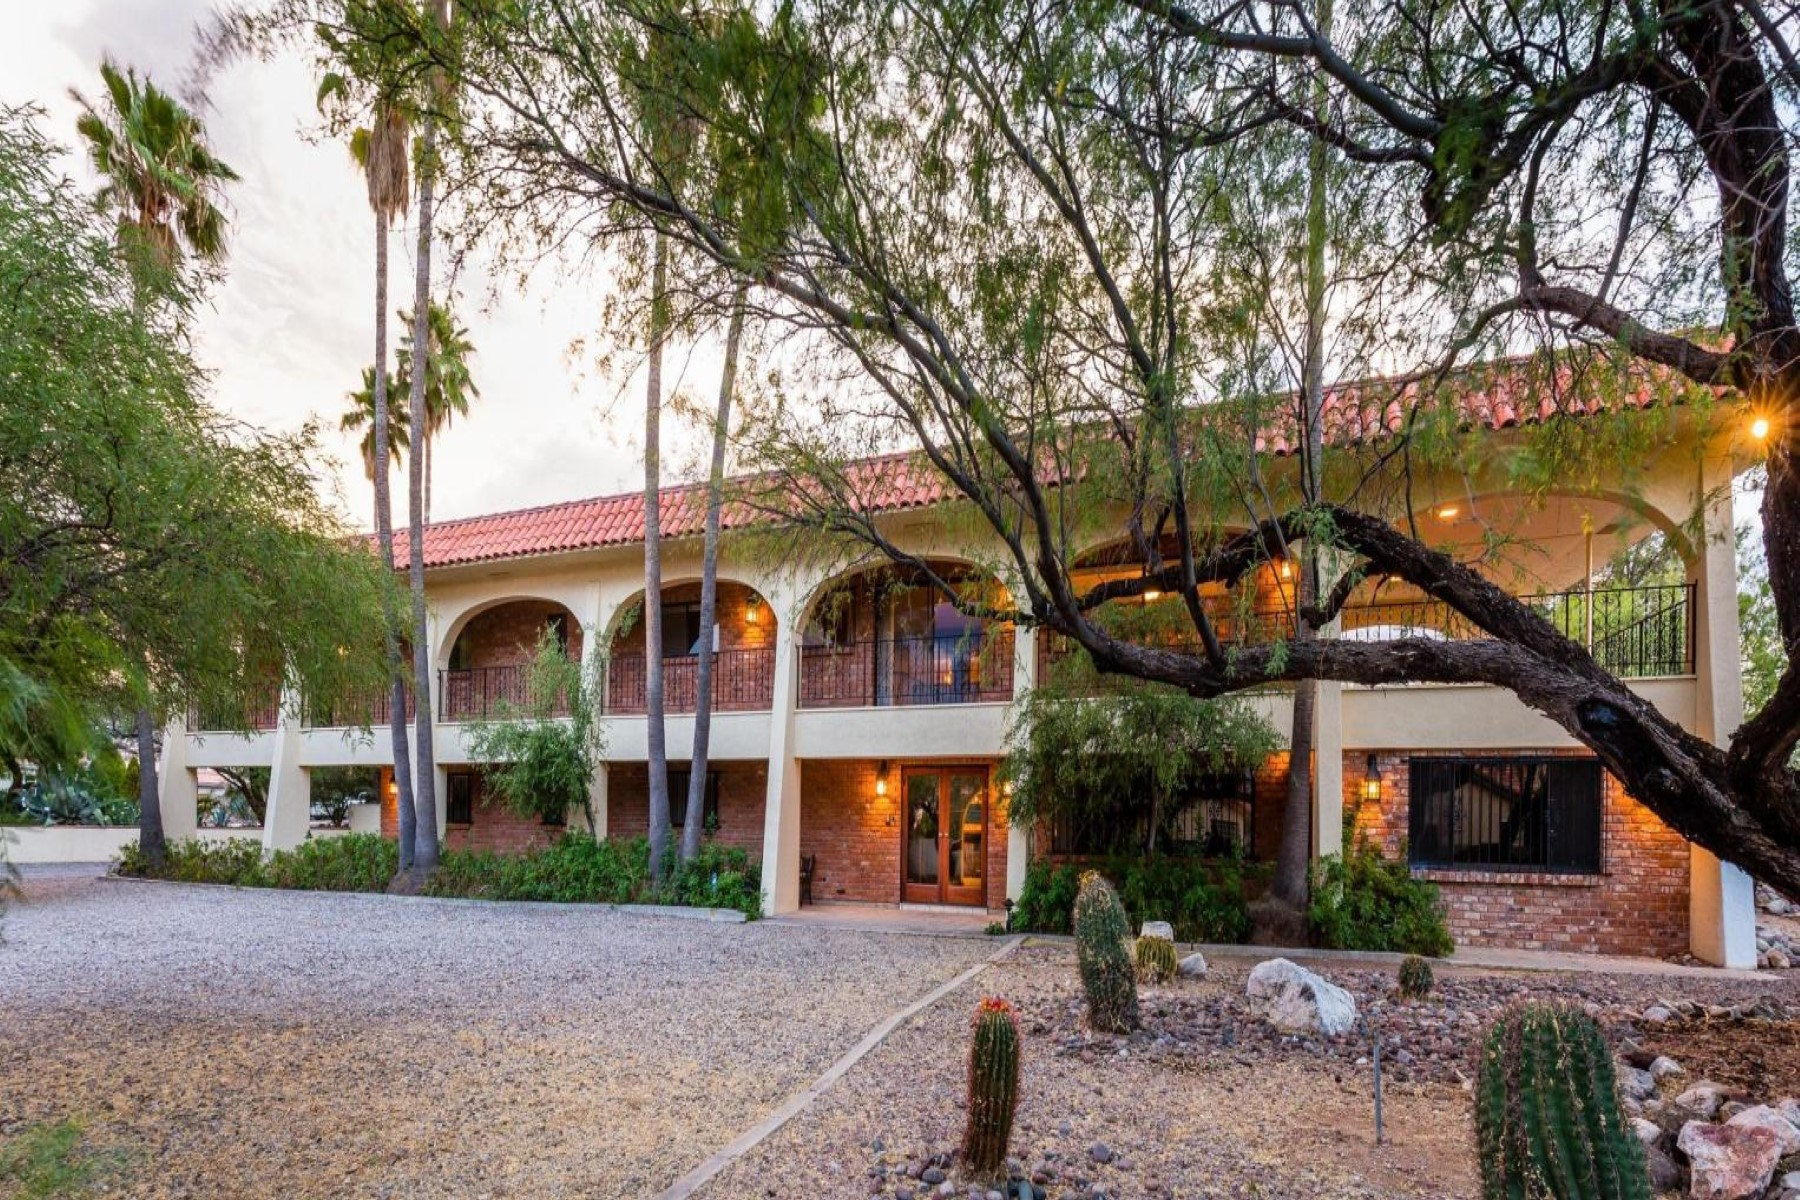 Villa per Vendita alle ore Private gated compound on nearly 3 acres providing a secluded feel 260 S Sewell Place, Tucson, Arizona, 85748 Stati Uniti